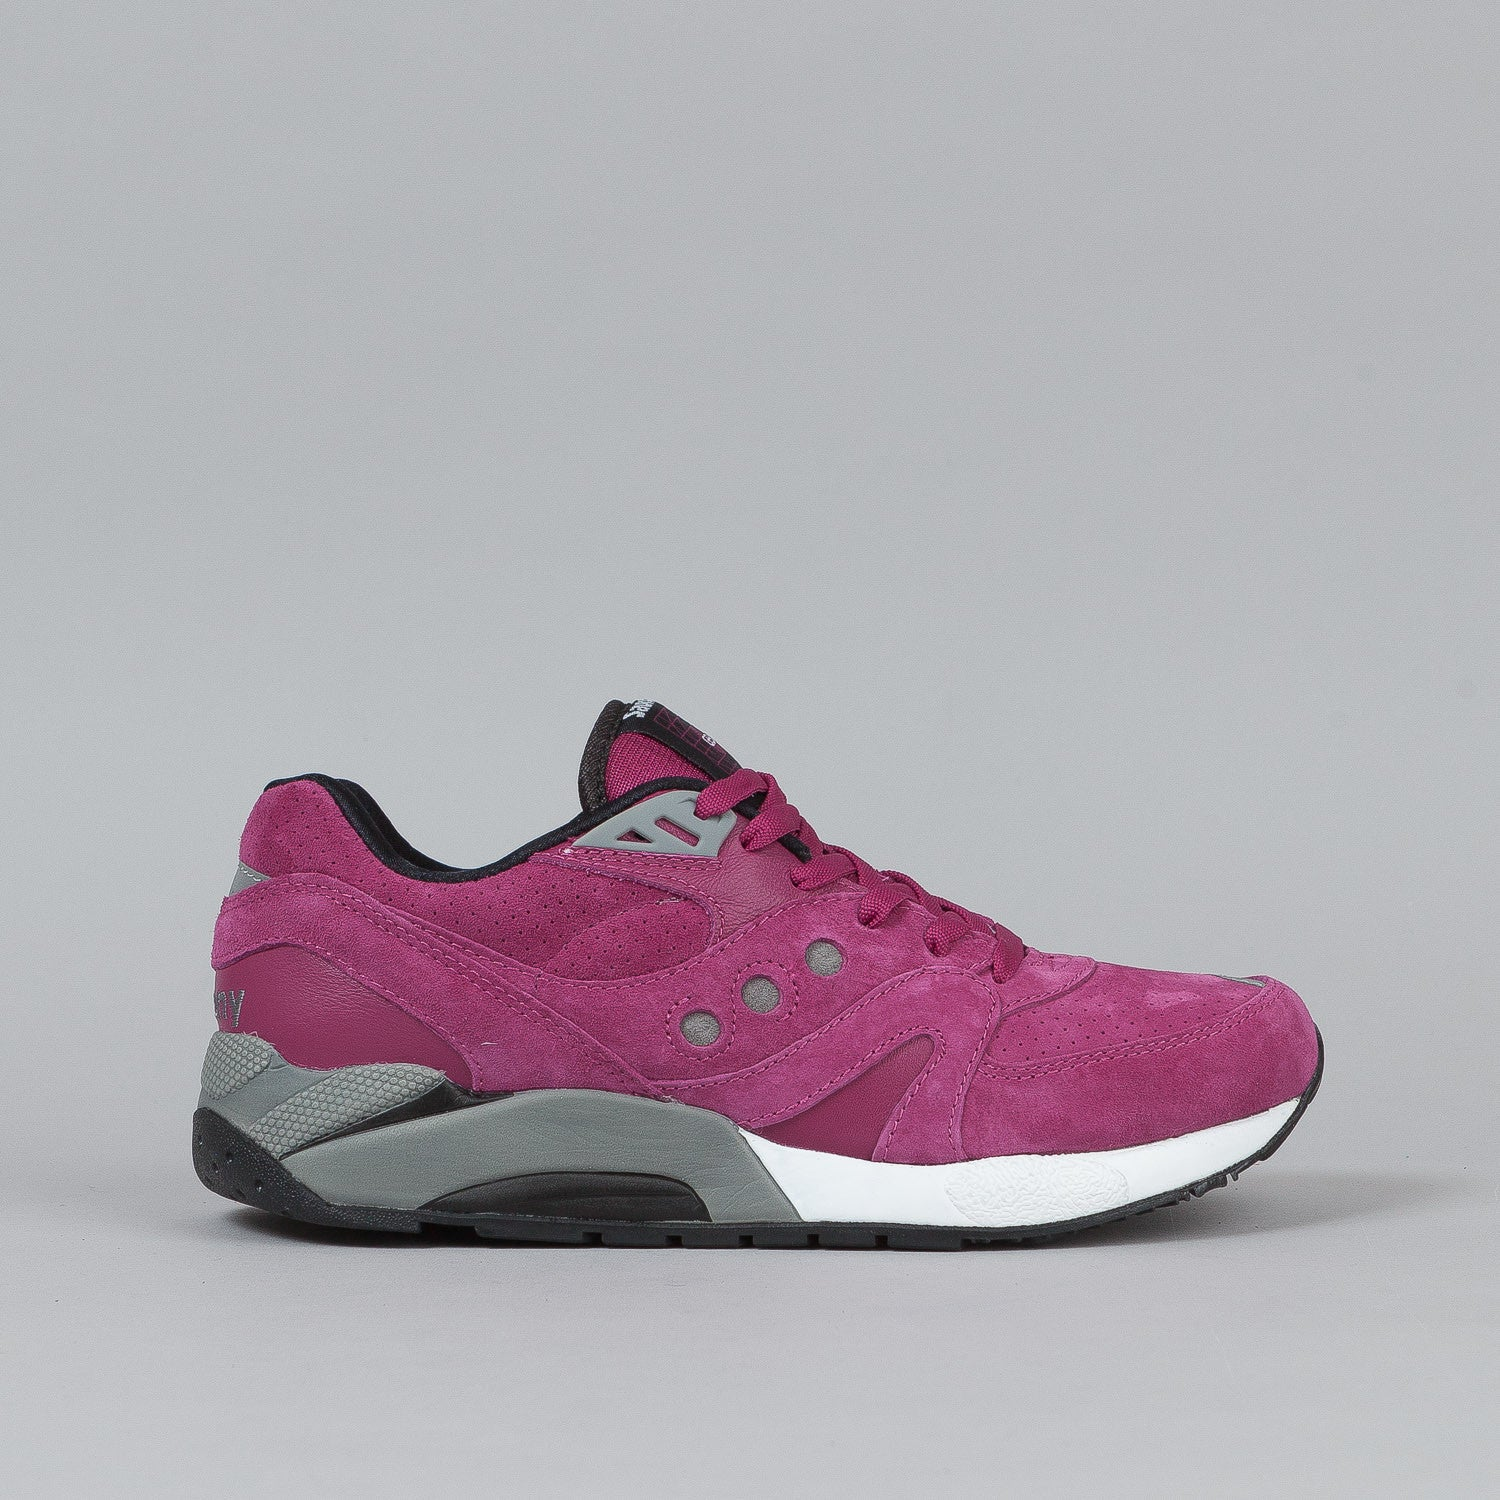 Saucony G9 Control Shoes